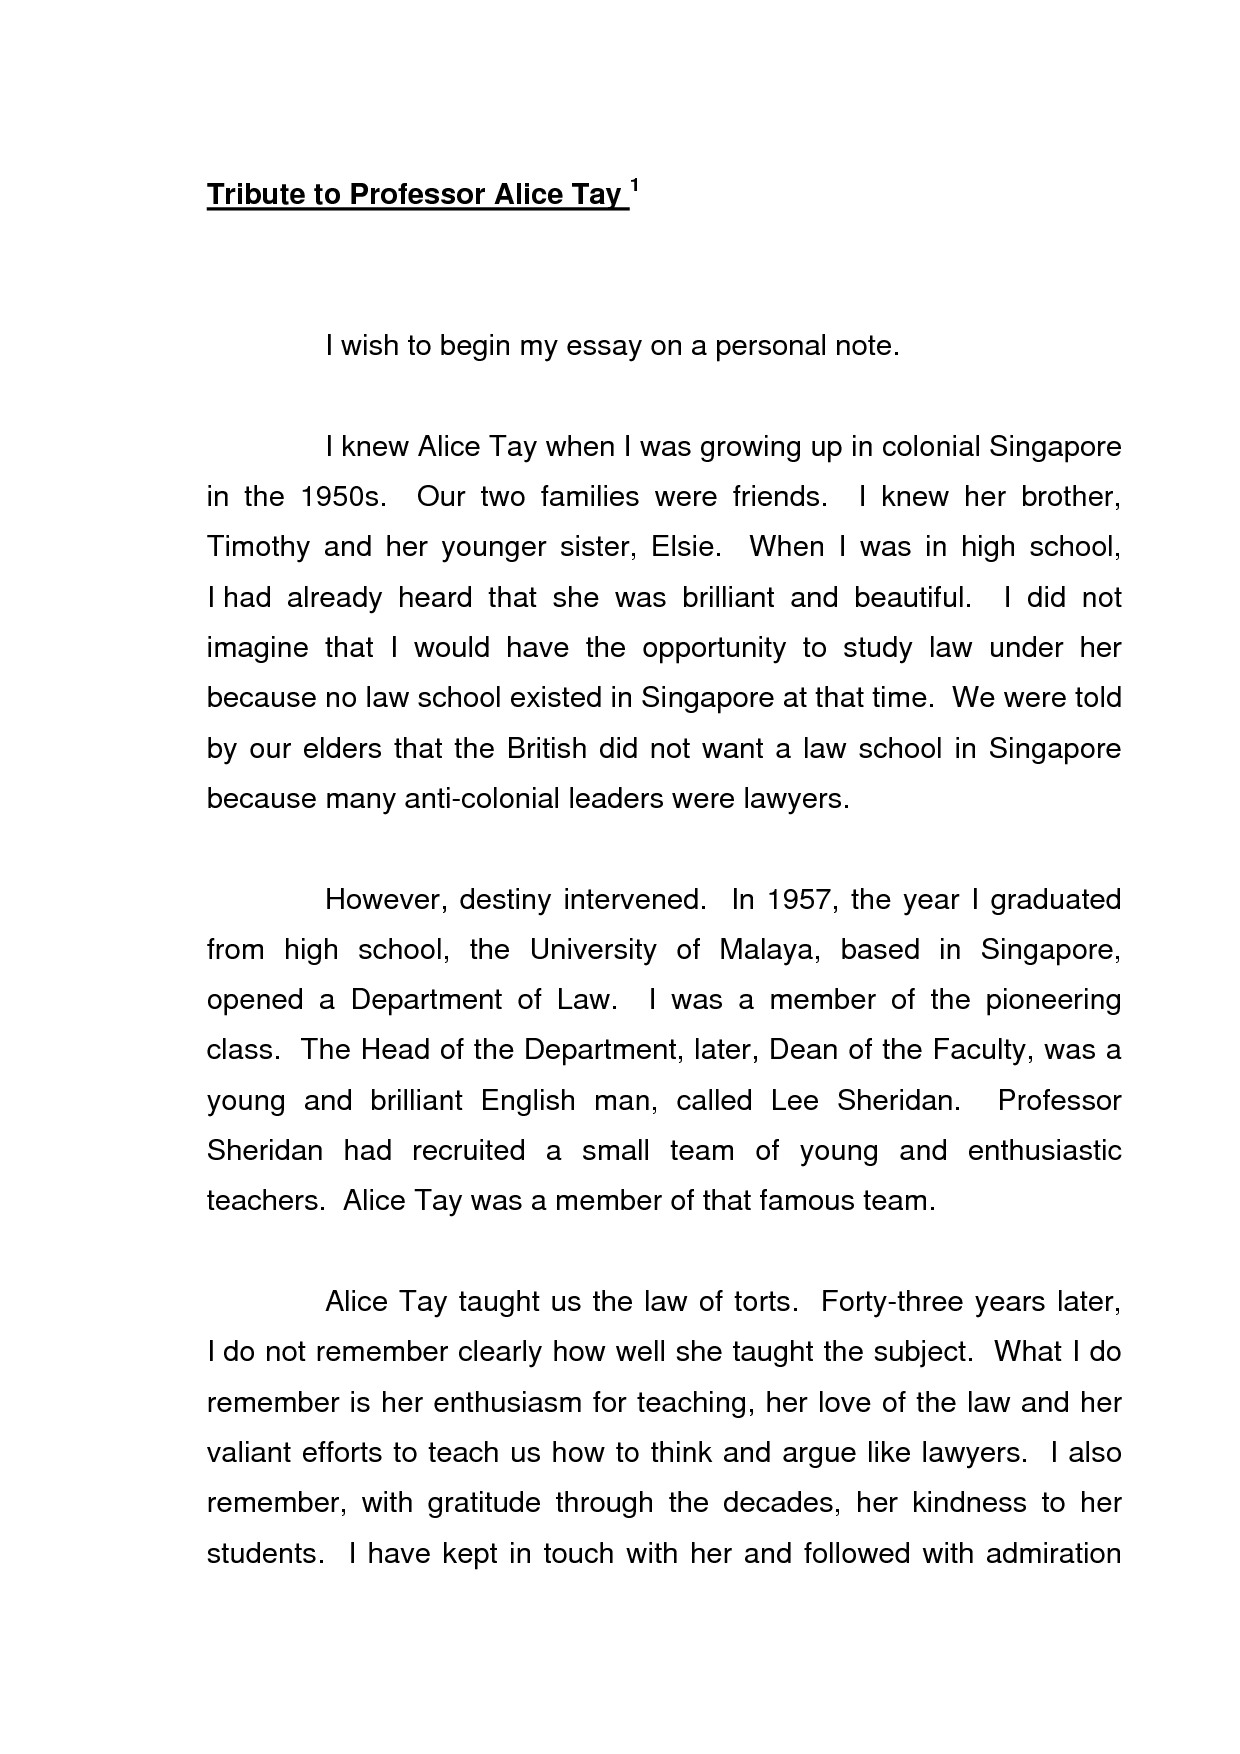 002 Essay Example How To Begin An Incredible Start Introduction About Yourself A Book Full